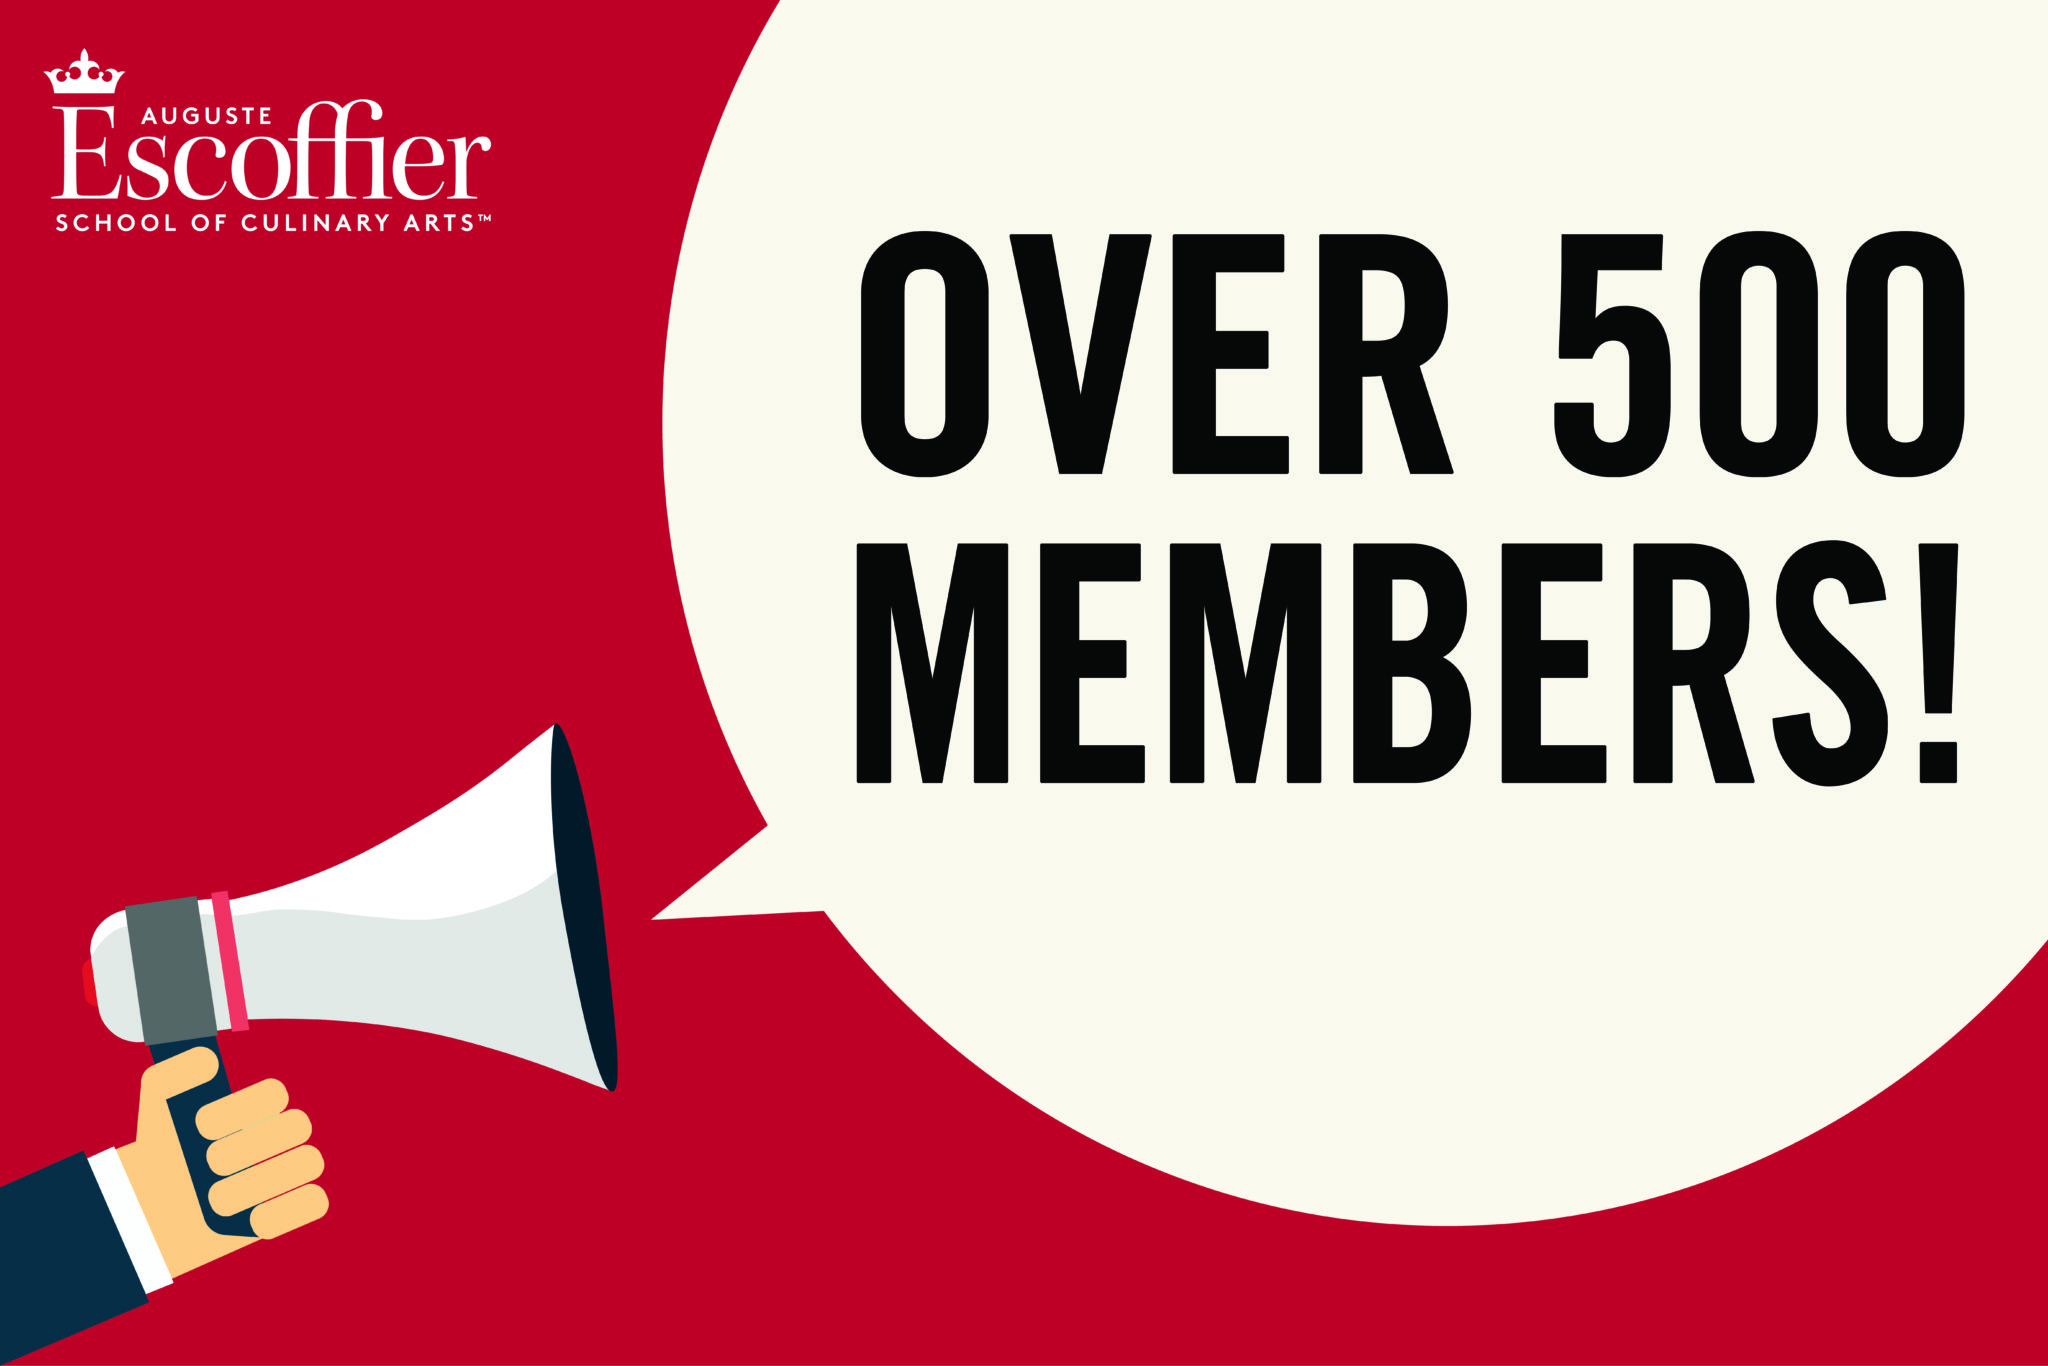 We reached 500 members with Escoffier's alumni association